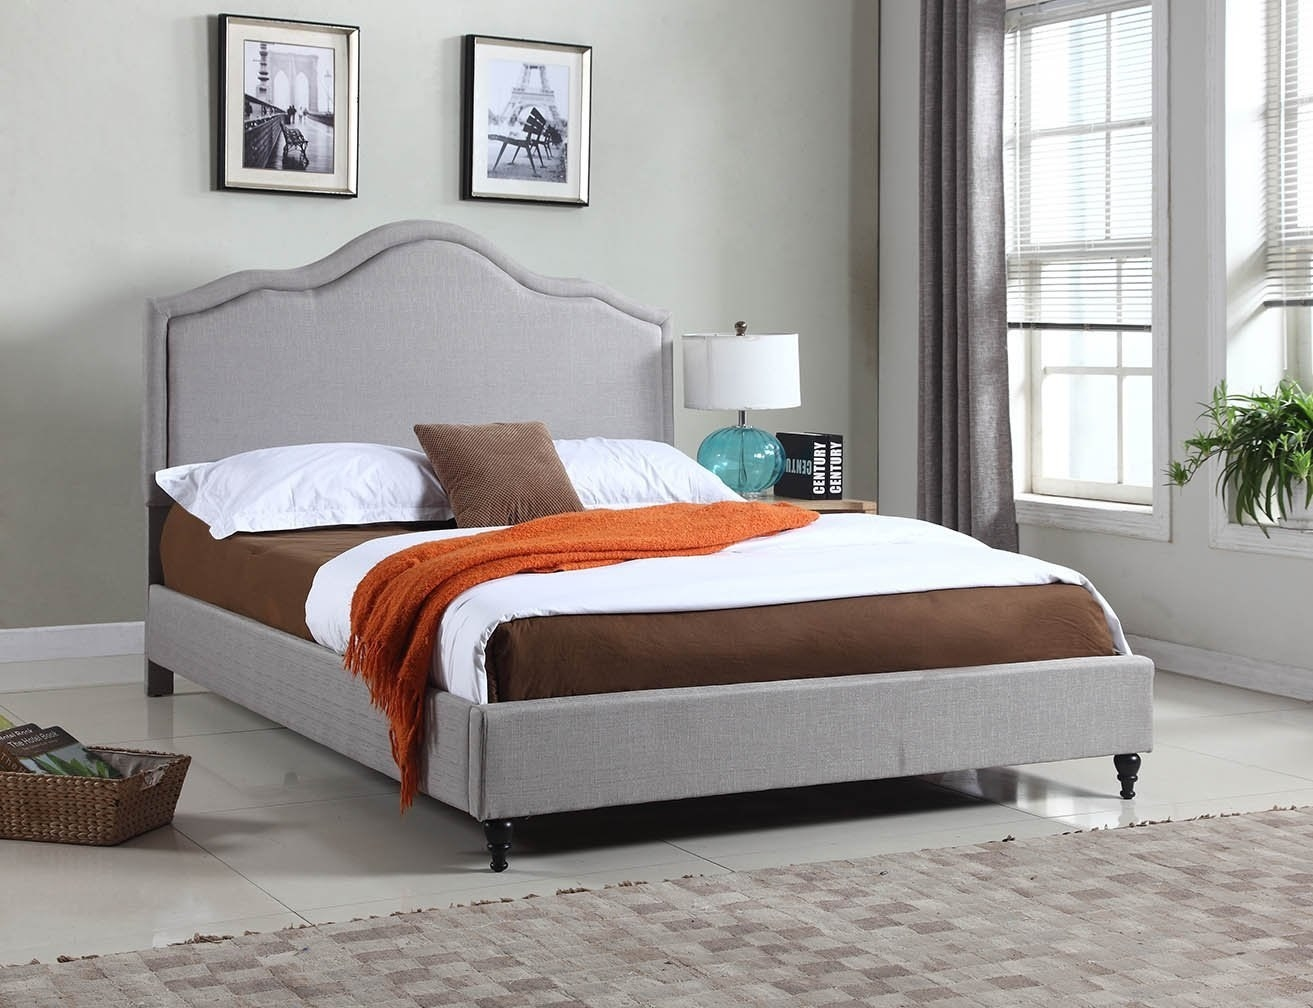 side view of the grey upholstered bed frame